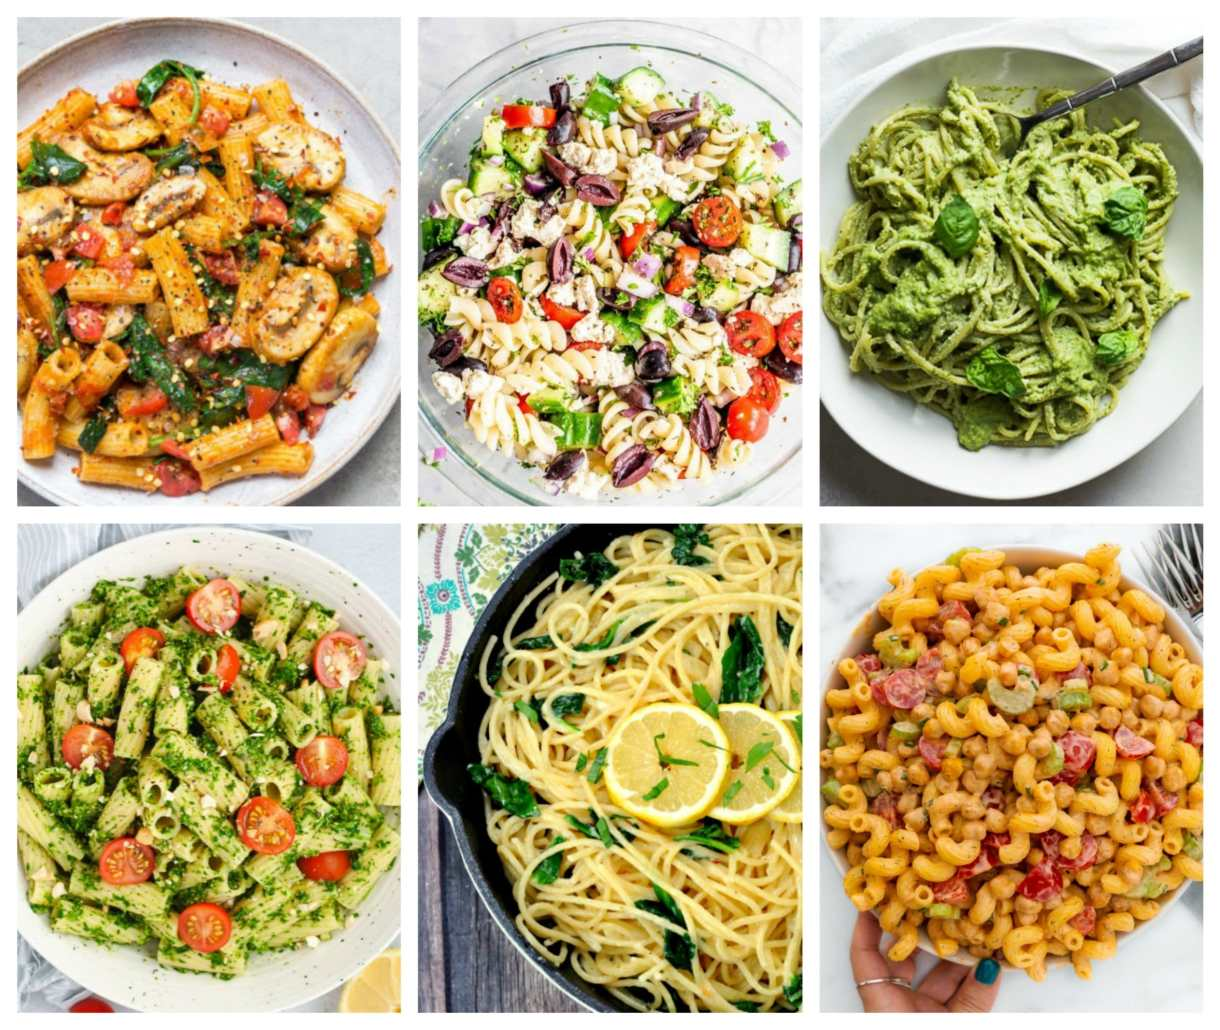 25 Tempting Vegan Pastas We Can't Live Without! 1